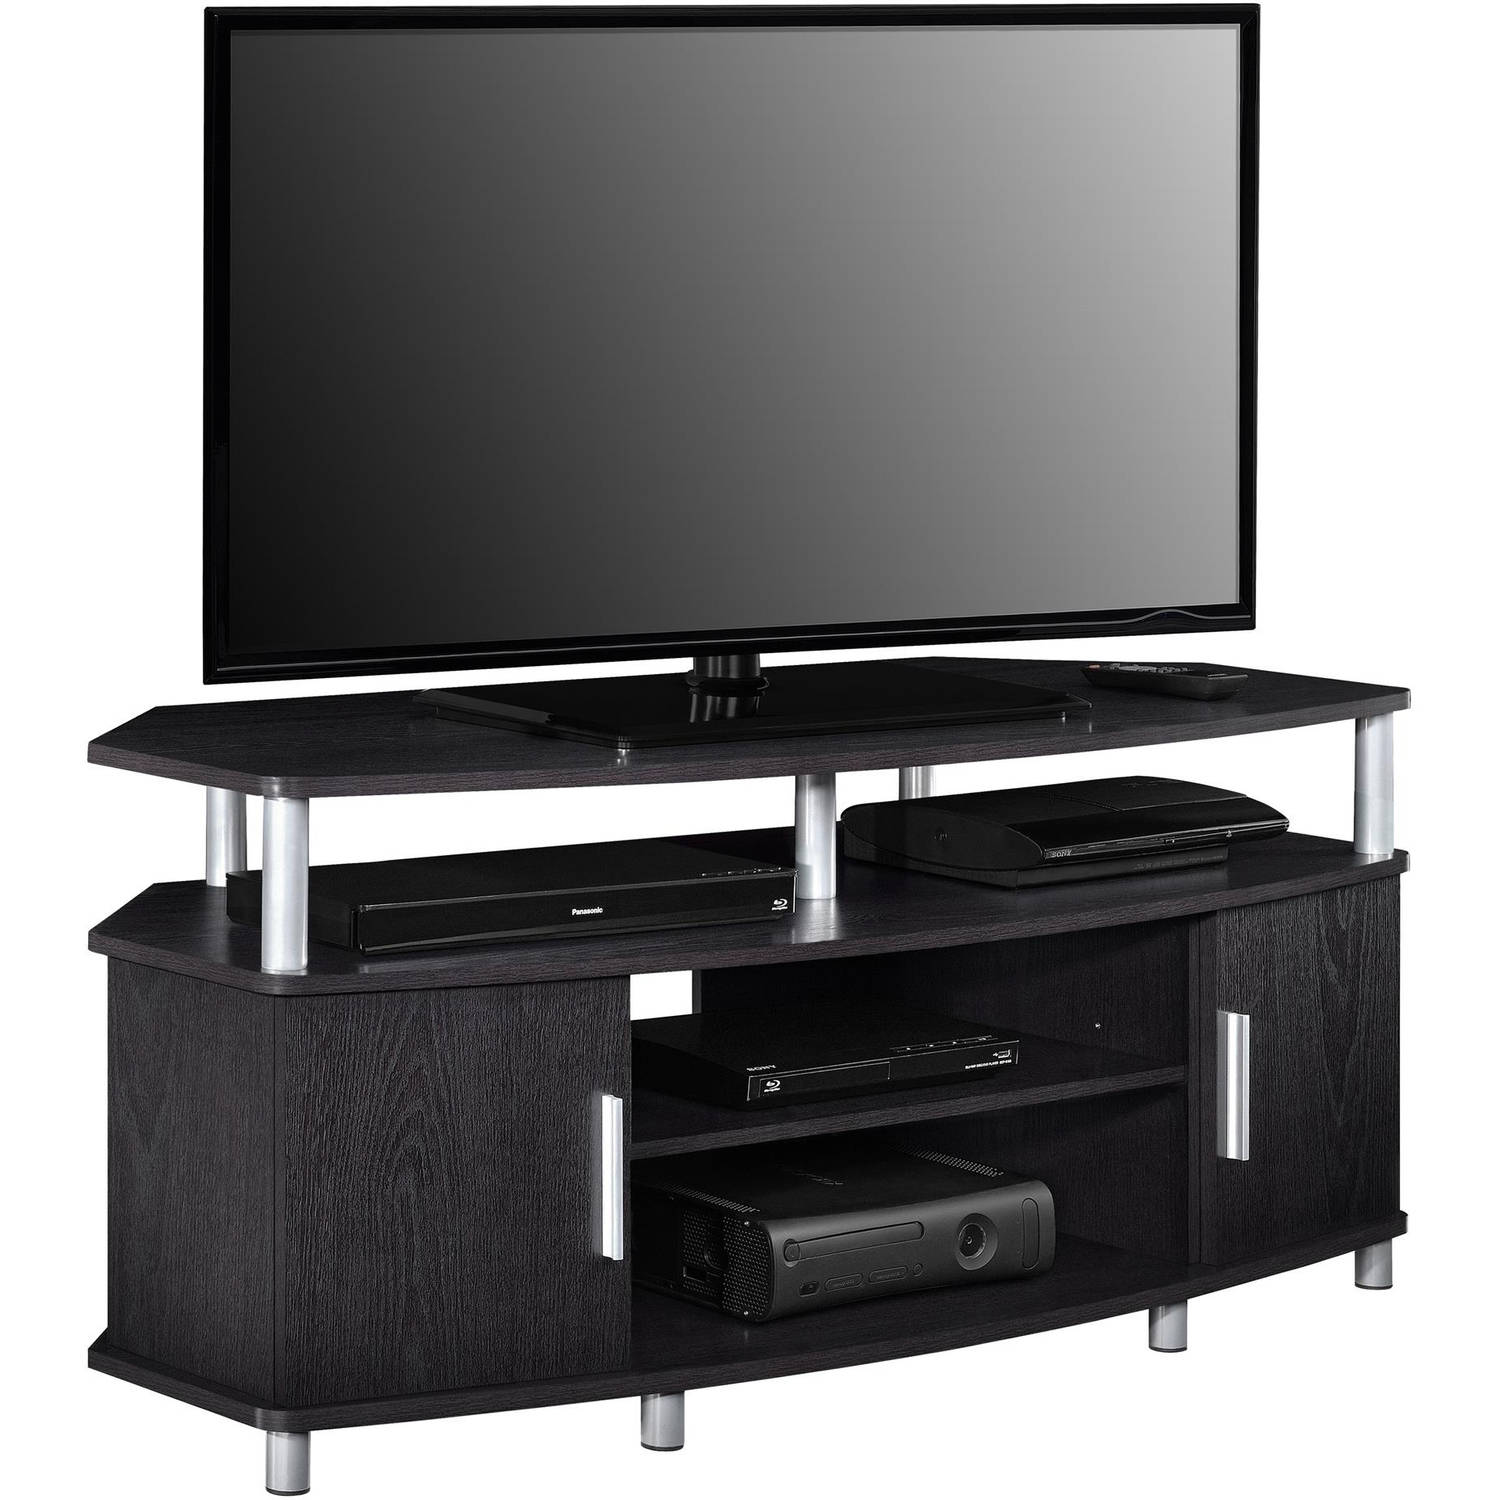 Ameriwood Home Carson Corner Tv Stand For Tvs Up To 50 Wide Black